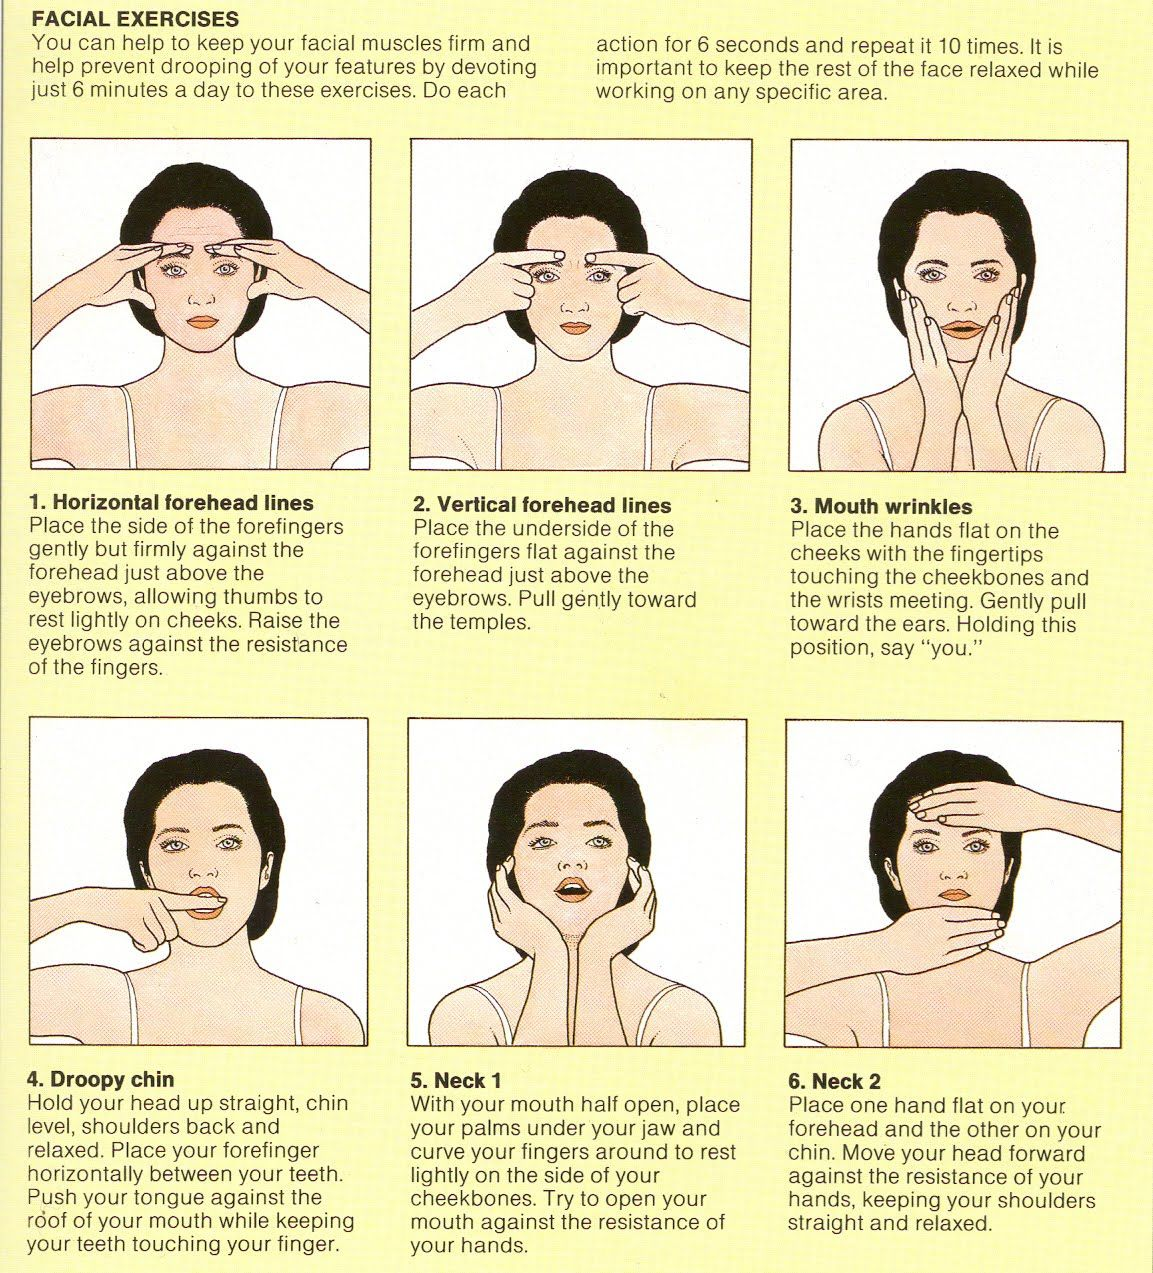 Facial exercise massage